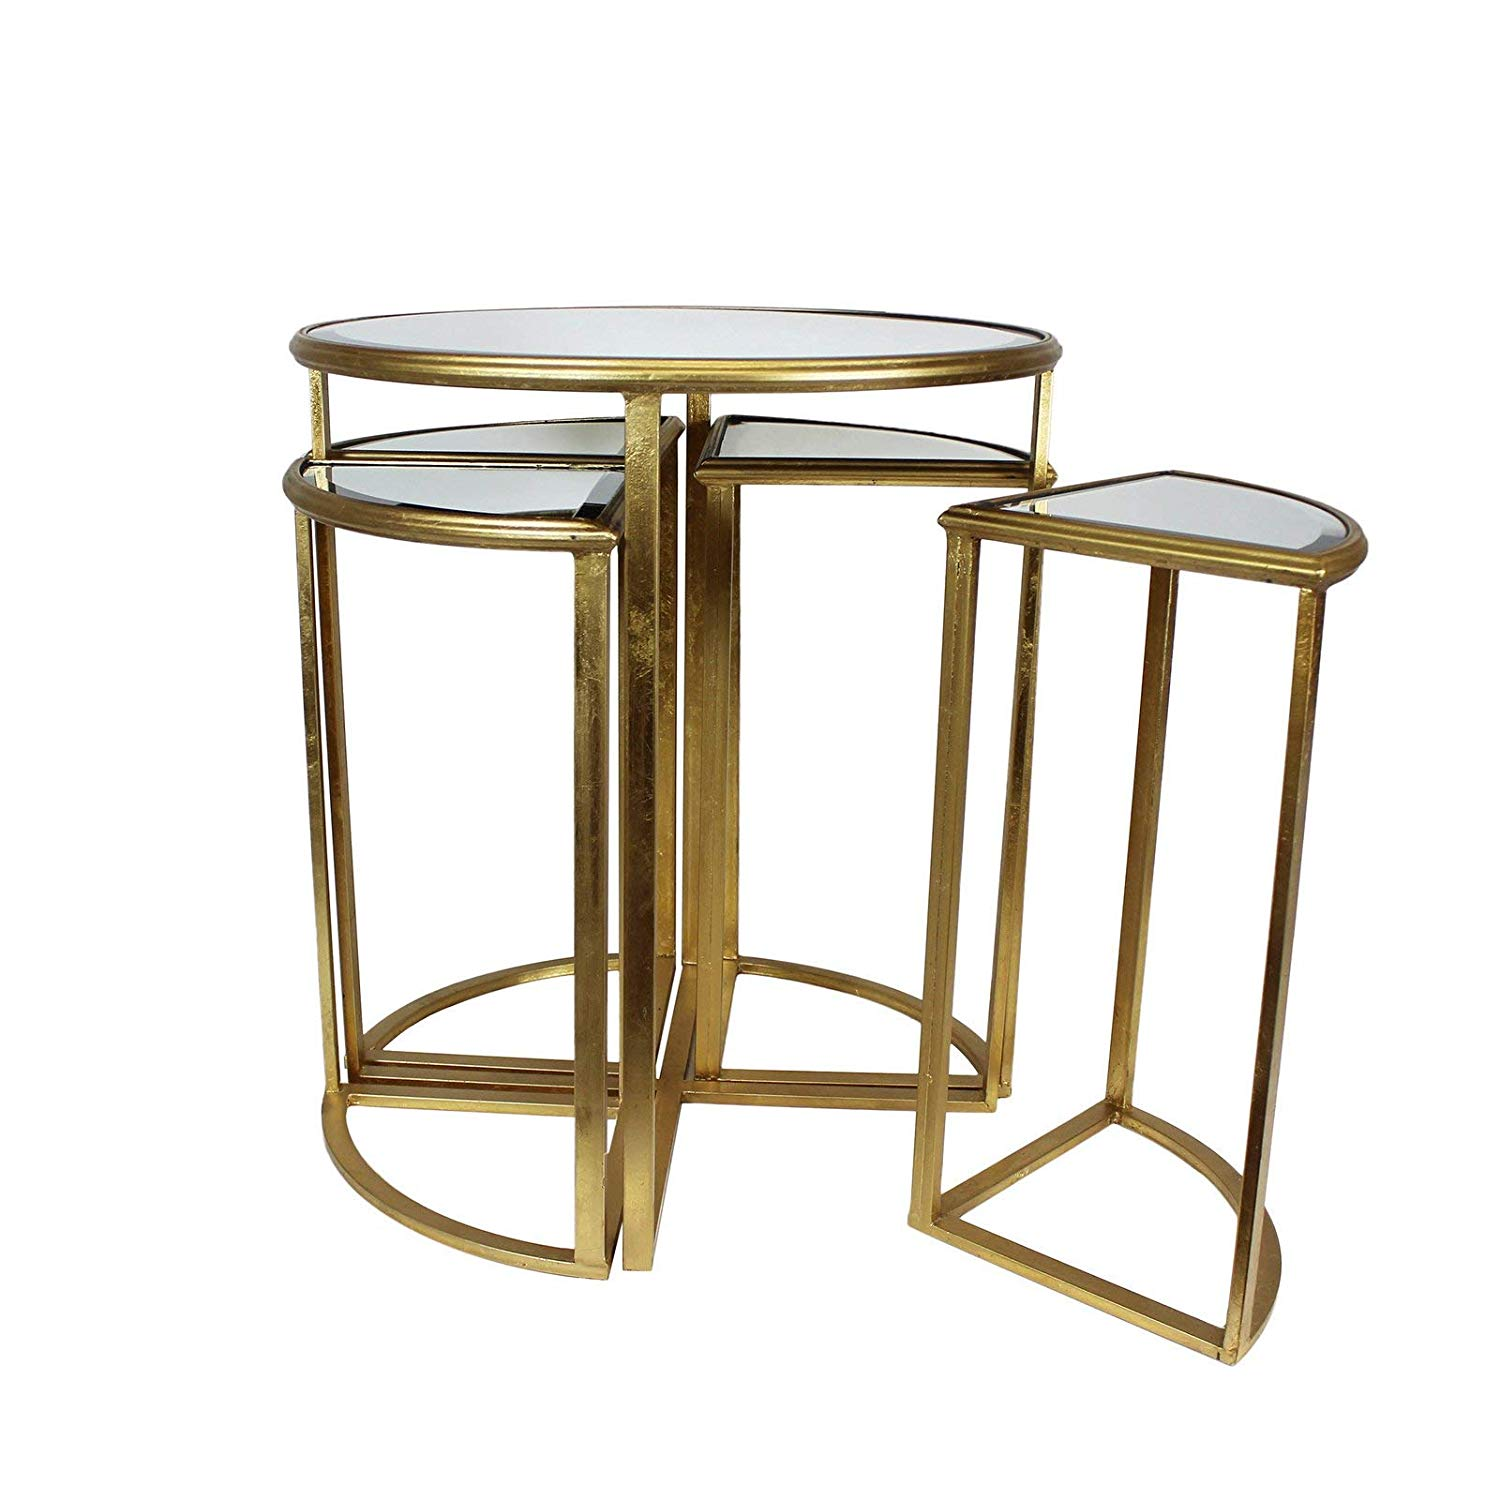 urban designs round gold mirror accent table home kitchen metal dining sets white mirrored chair and set tier target skinny wine rack unfinished cabinets chairs with folding sides